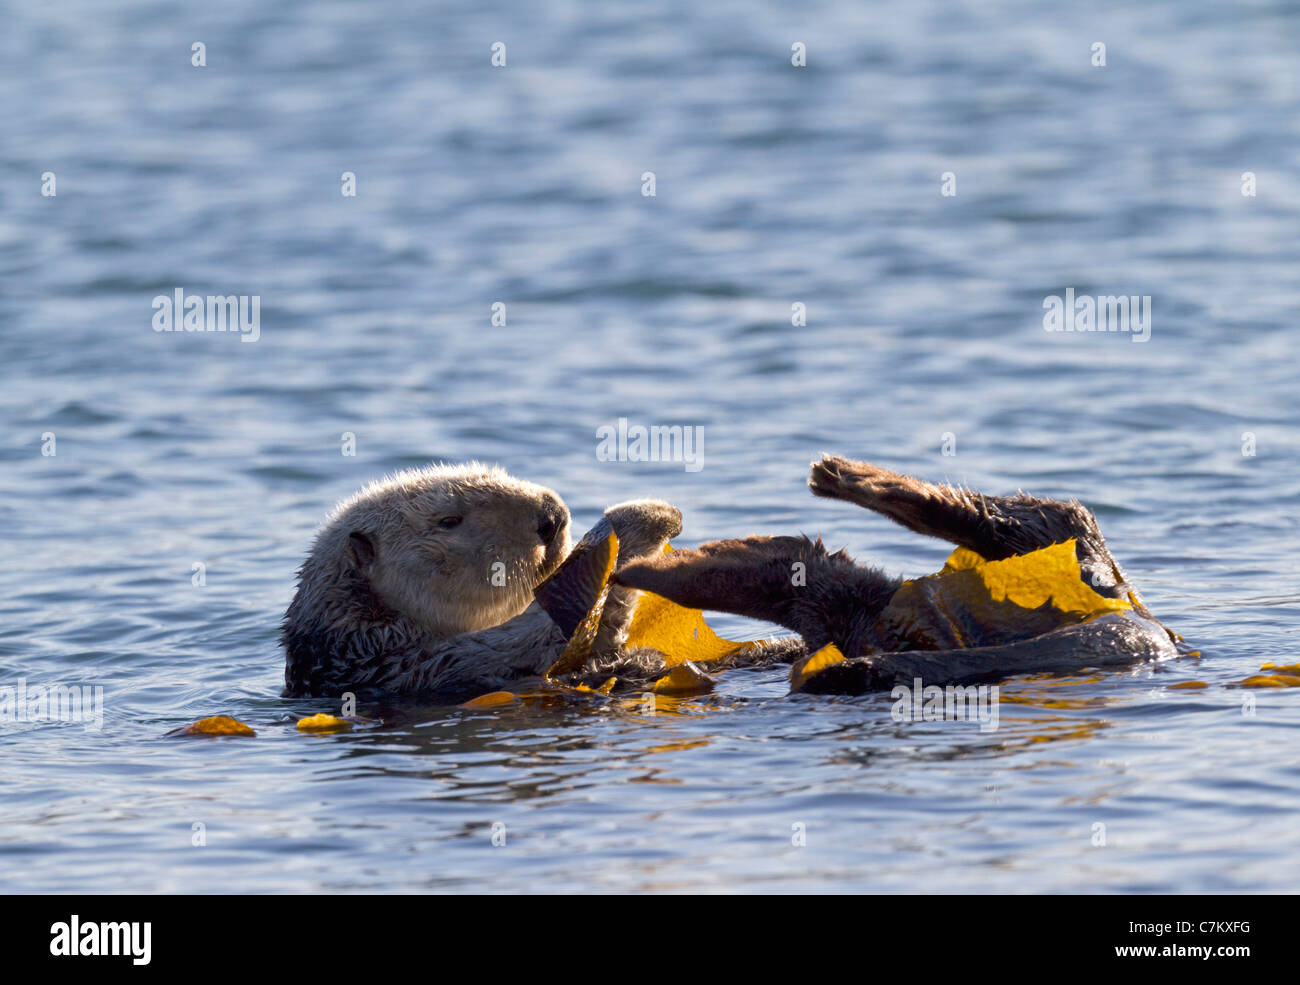 Sea otter with seaweed (Enhydra lutris) - Stock Image